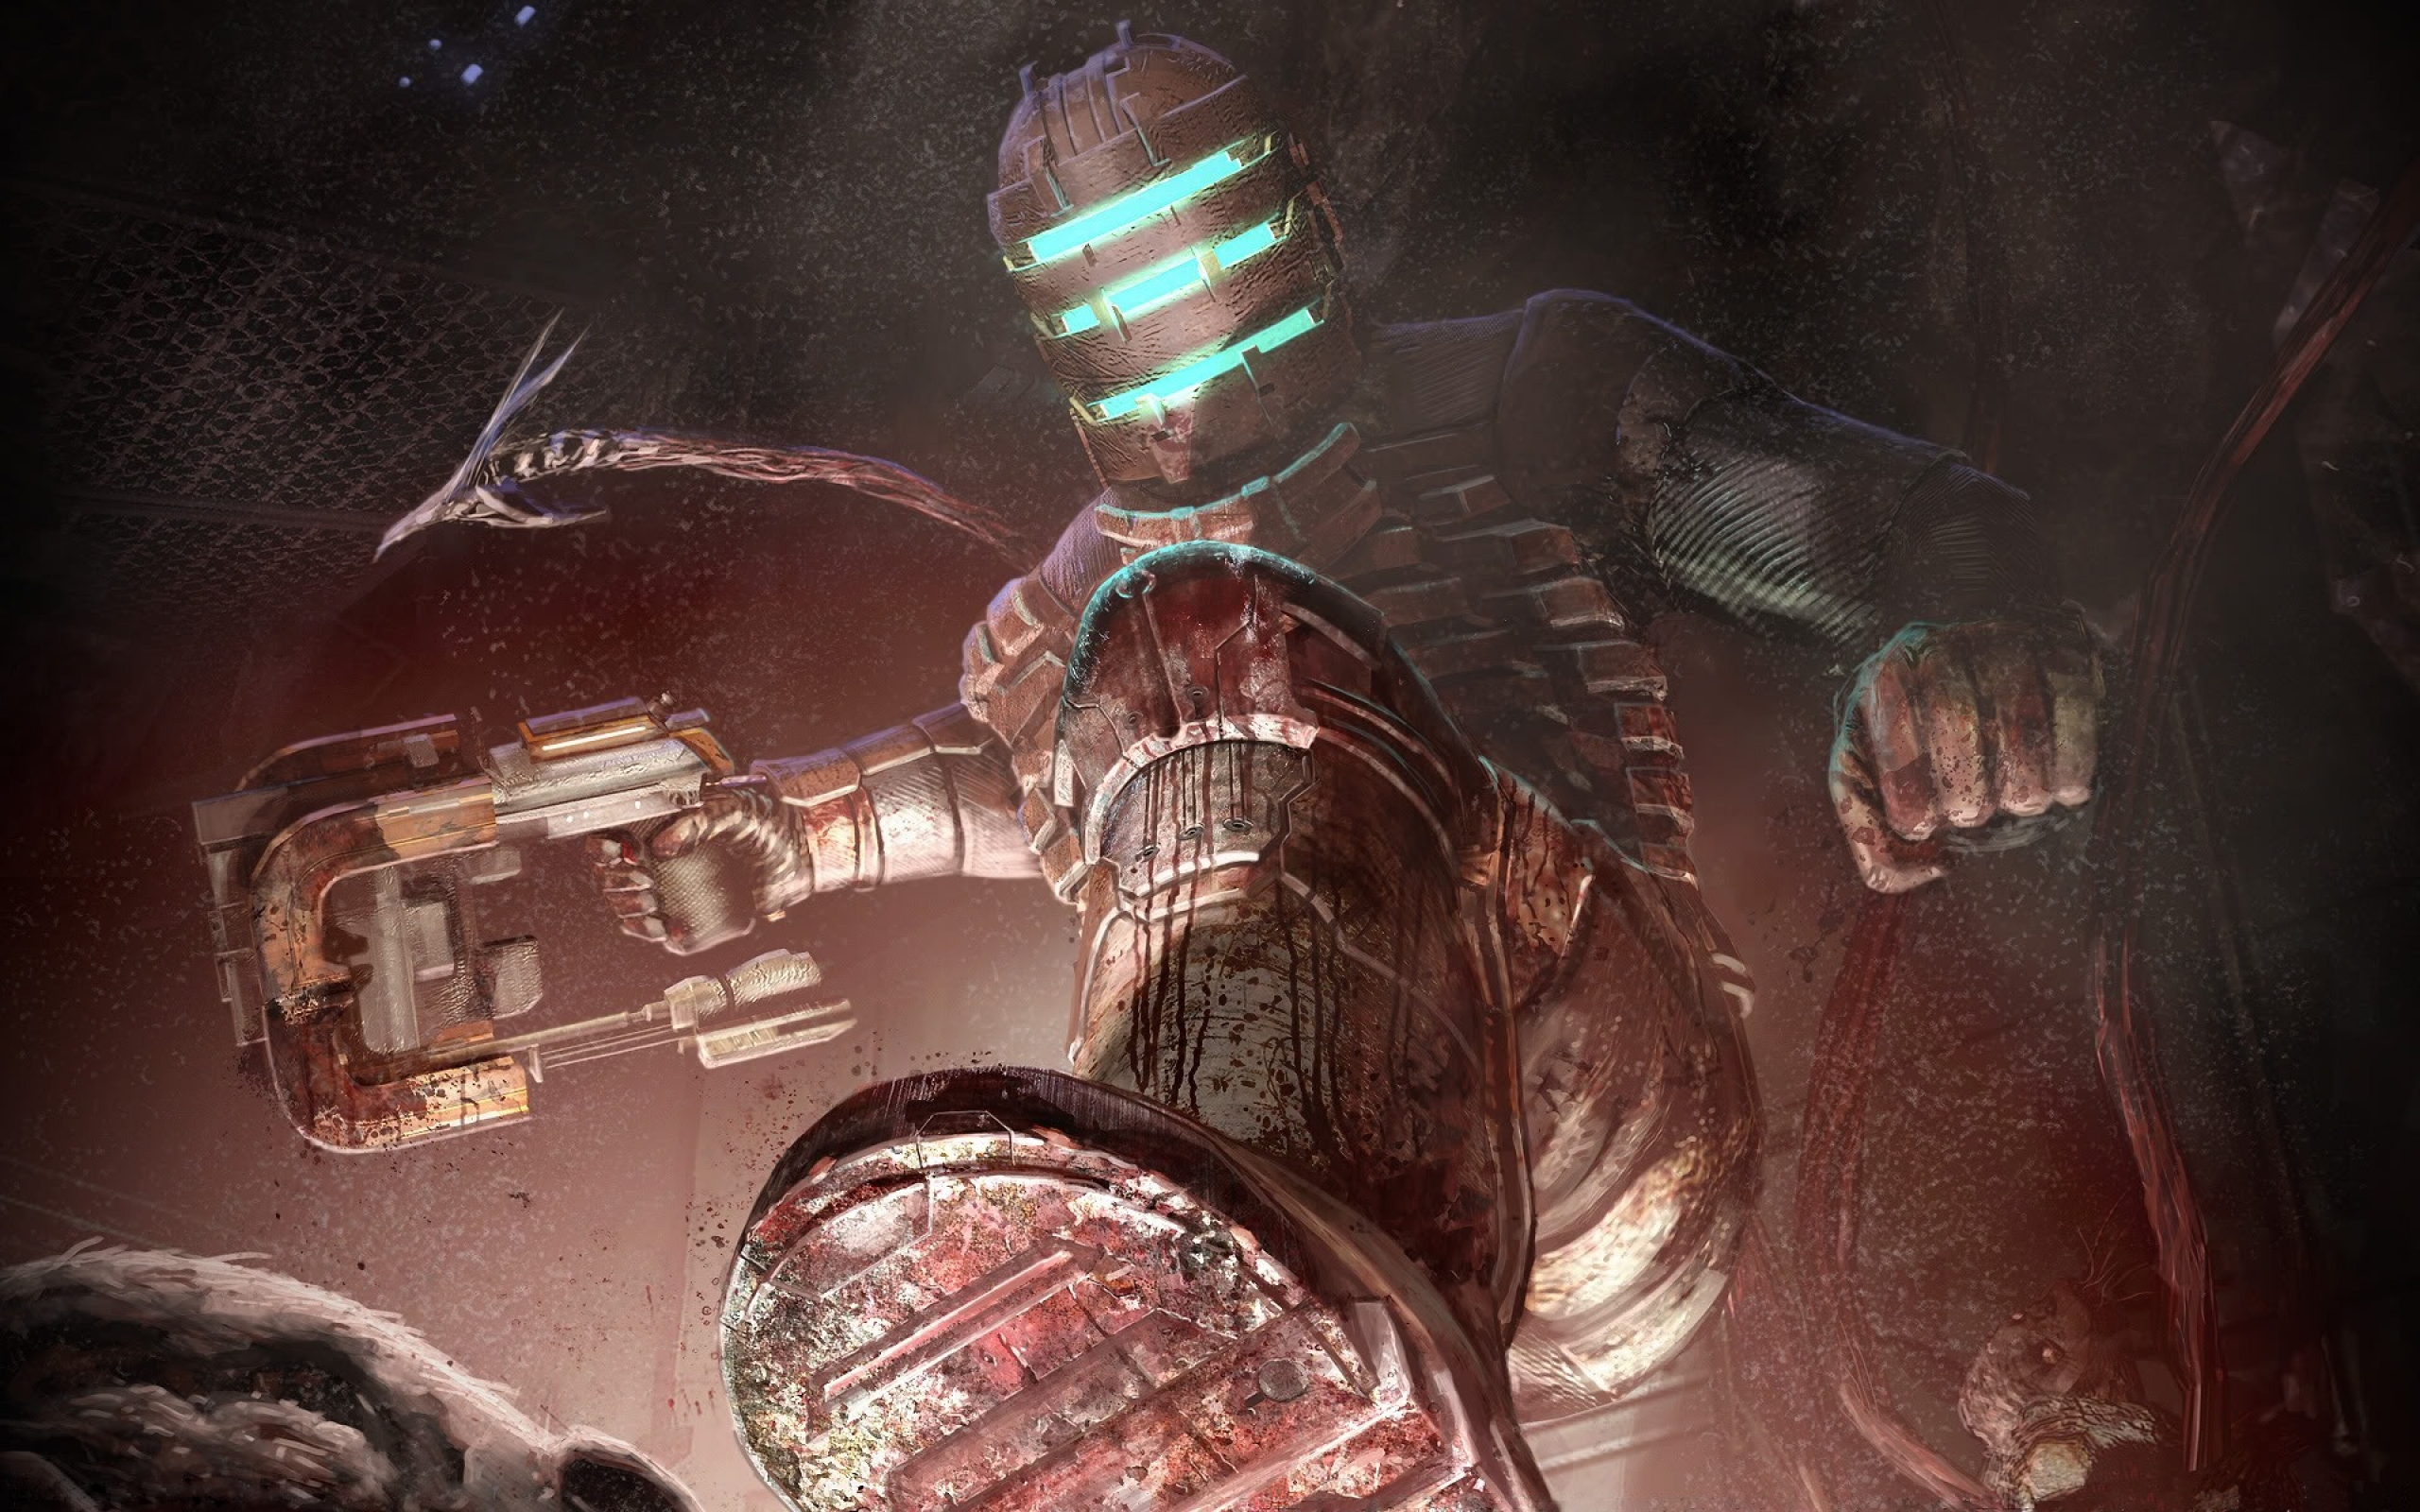 Dead space wallpapers dead space stock photos - Dead space mobile wallpaper ...